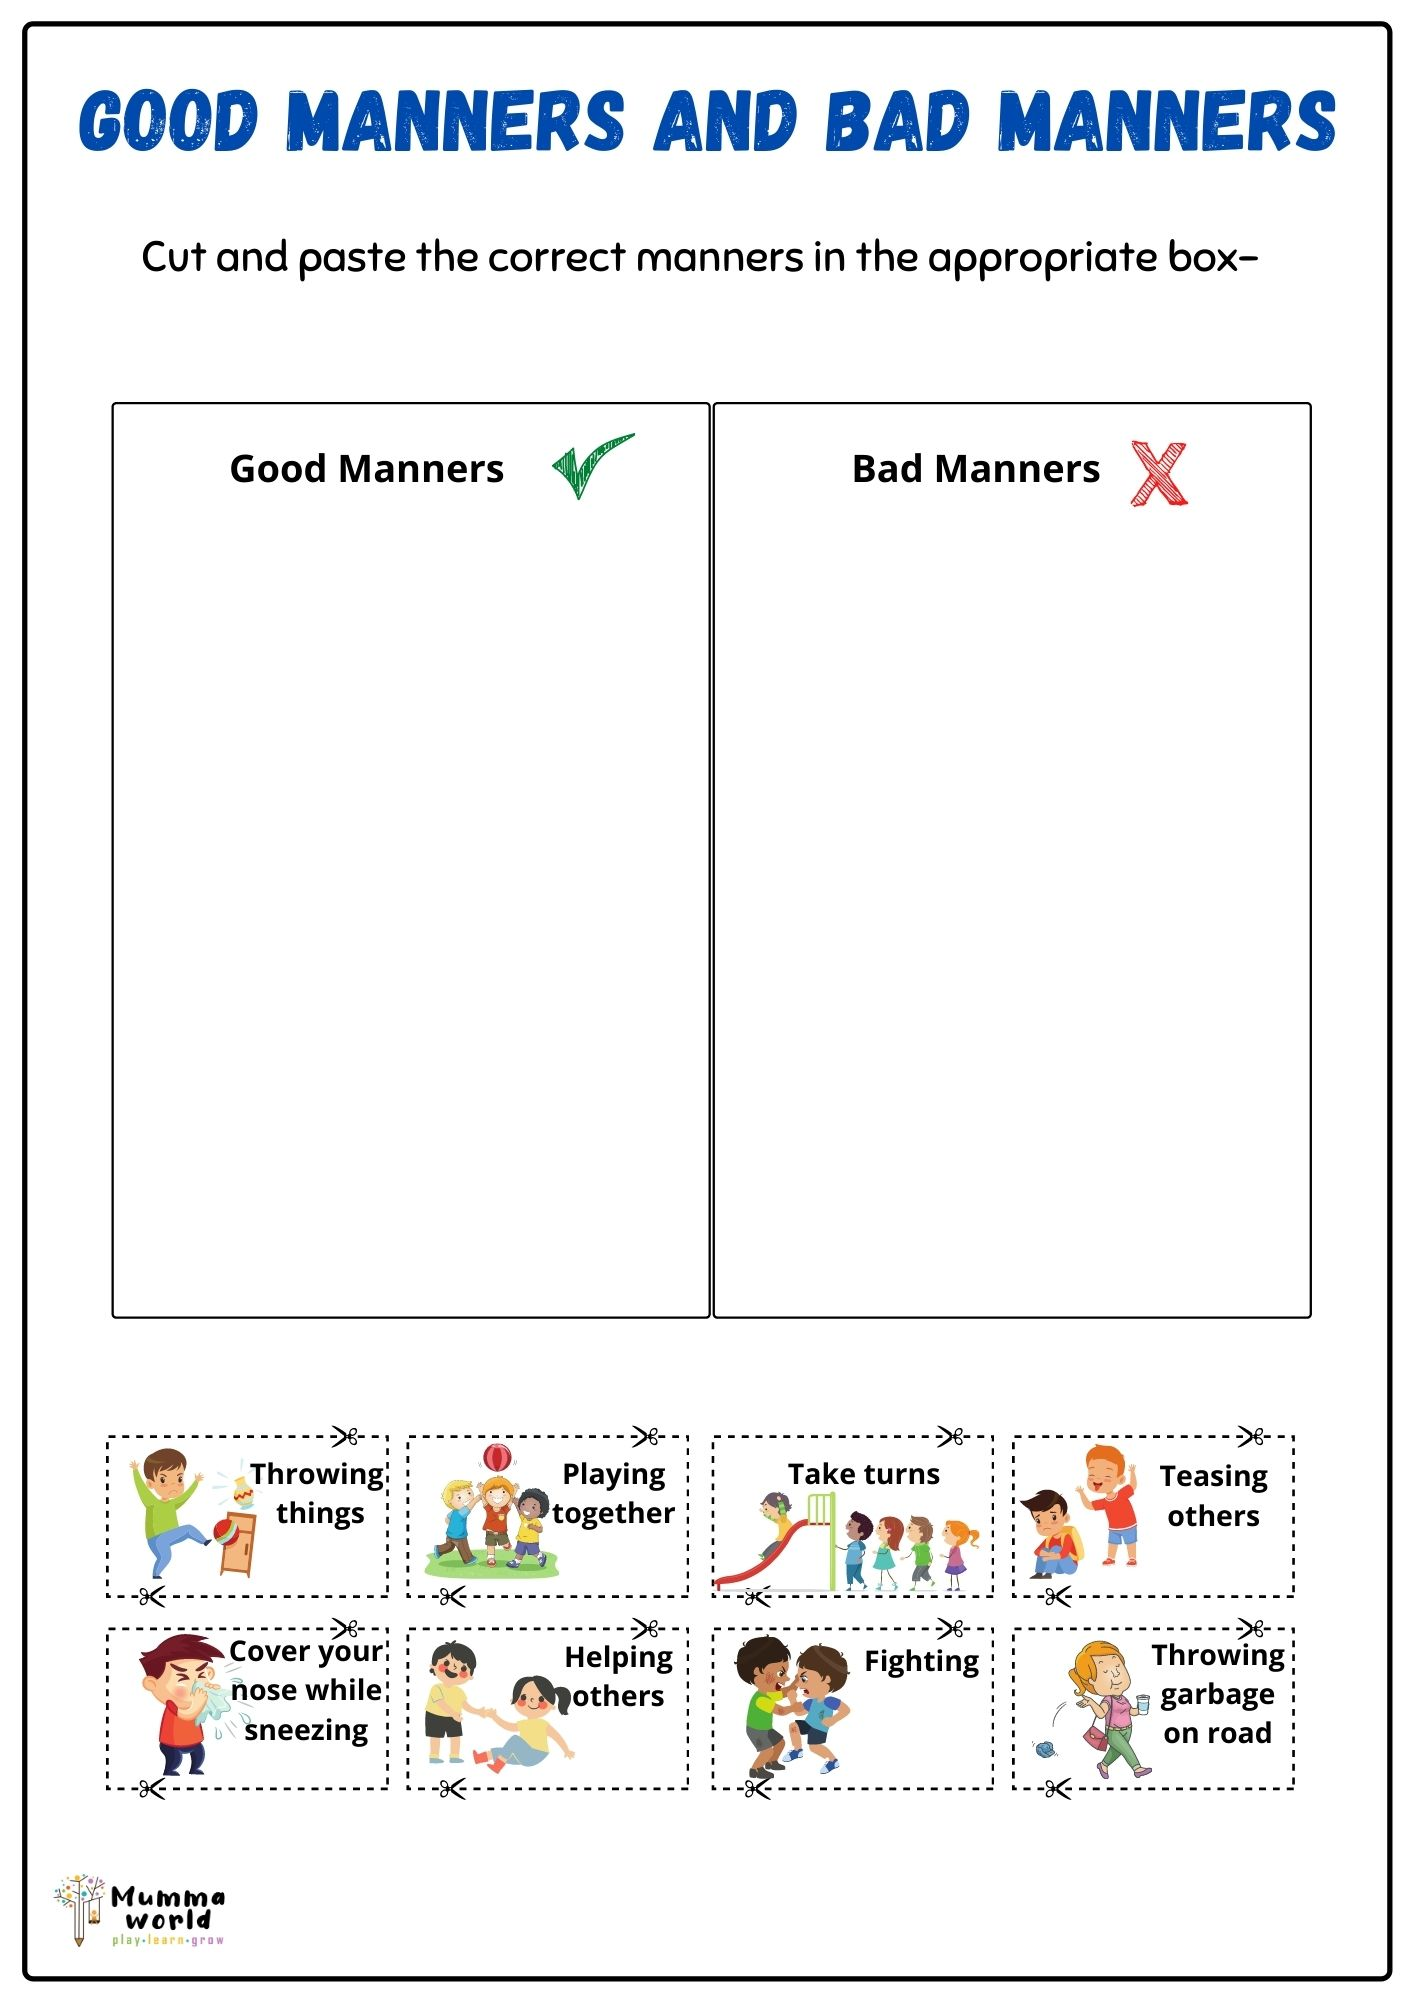 Good manners and bad manners worksheet